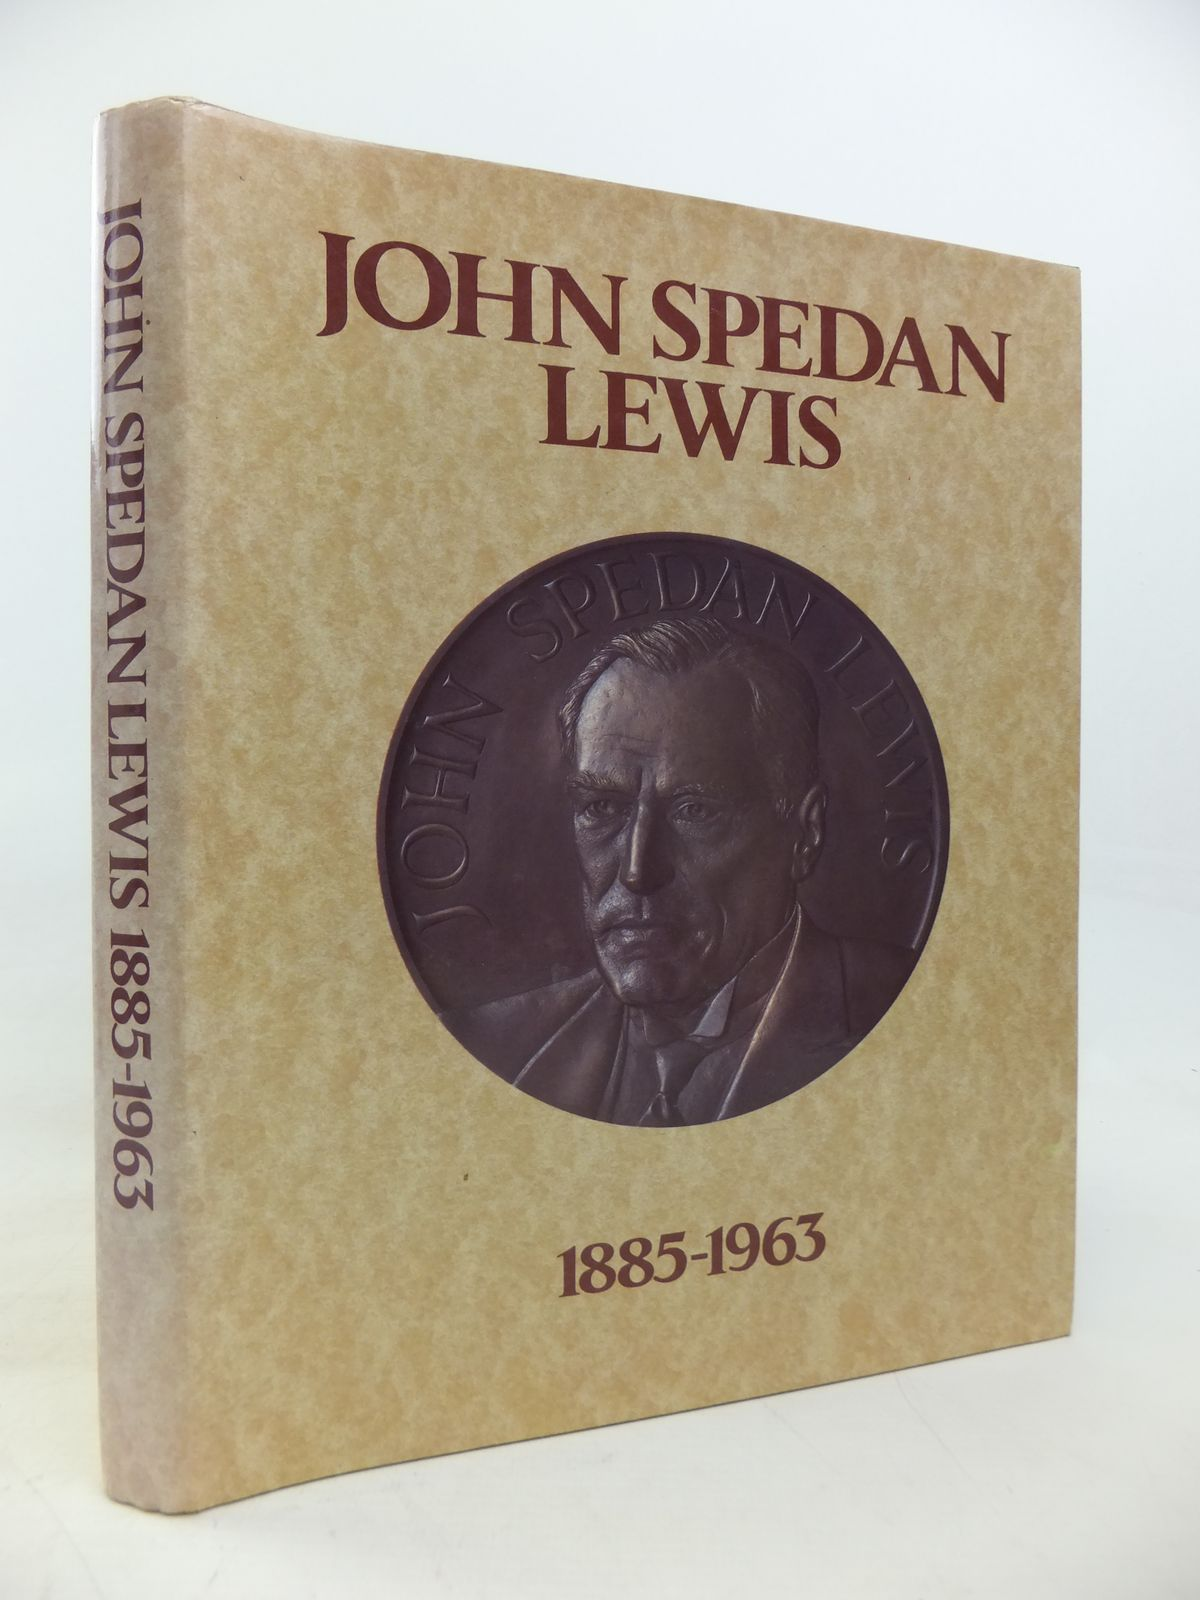 Photo of JOHN SPEDAN LEWIS 1885-1963 written by Lewis, Peter Macpherson, Hugh et al, published by John Lewis Partnership (STOCK CODE: 2115836)  for sale by Stella & Rose's Books